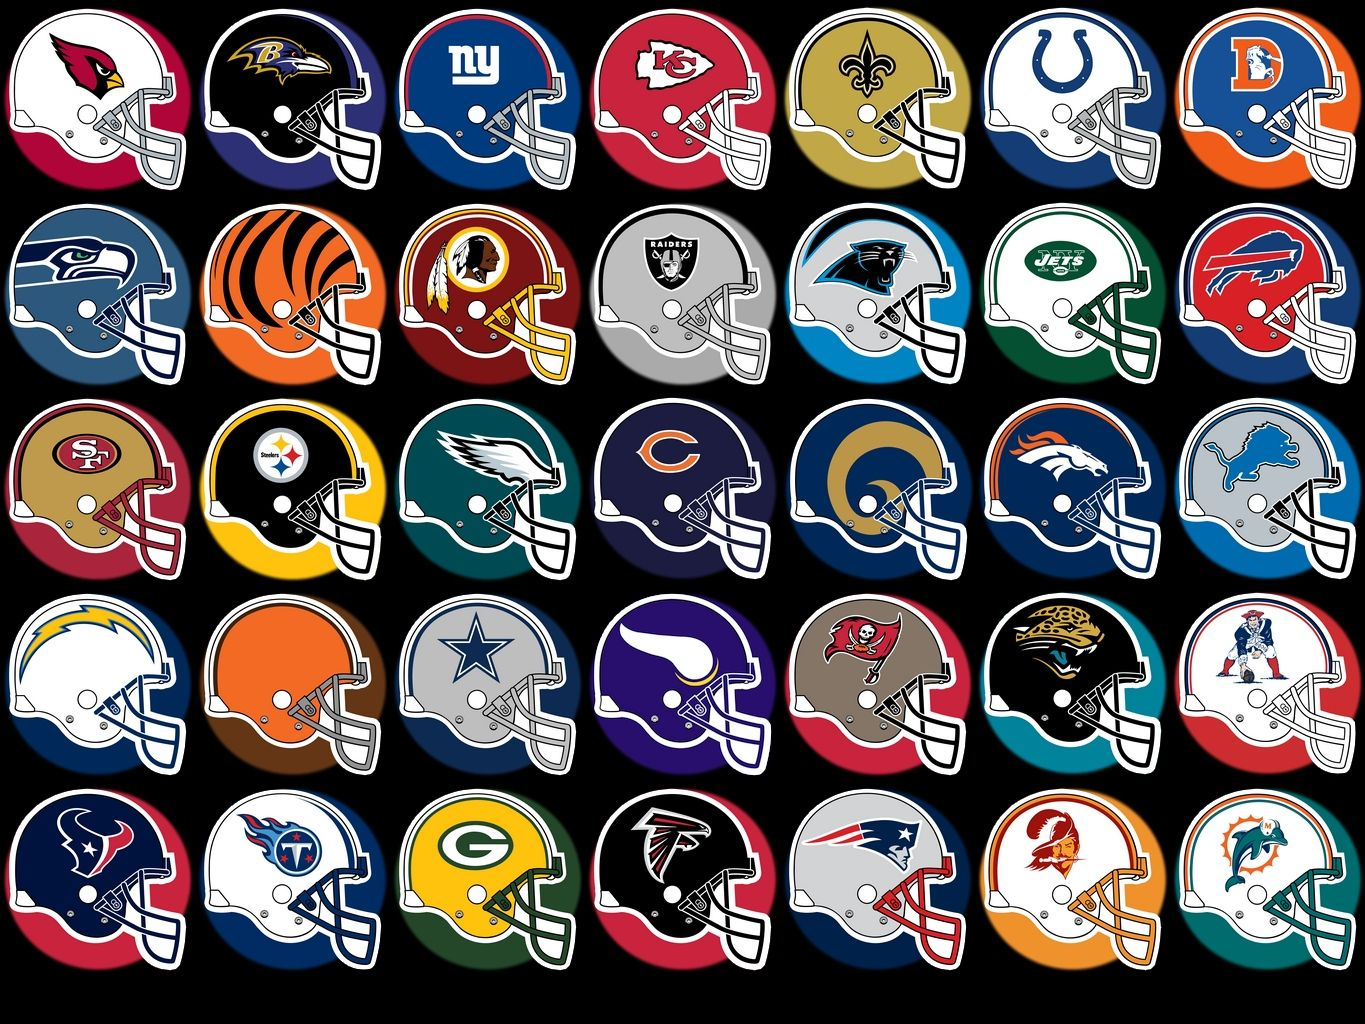 All Nfl Team Logos And Names On Helmet